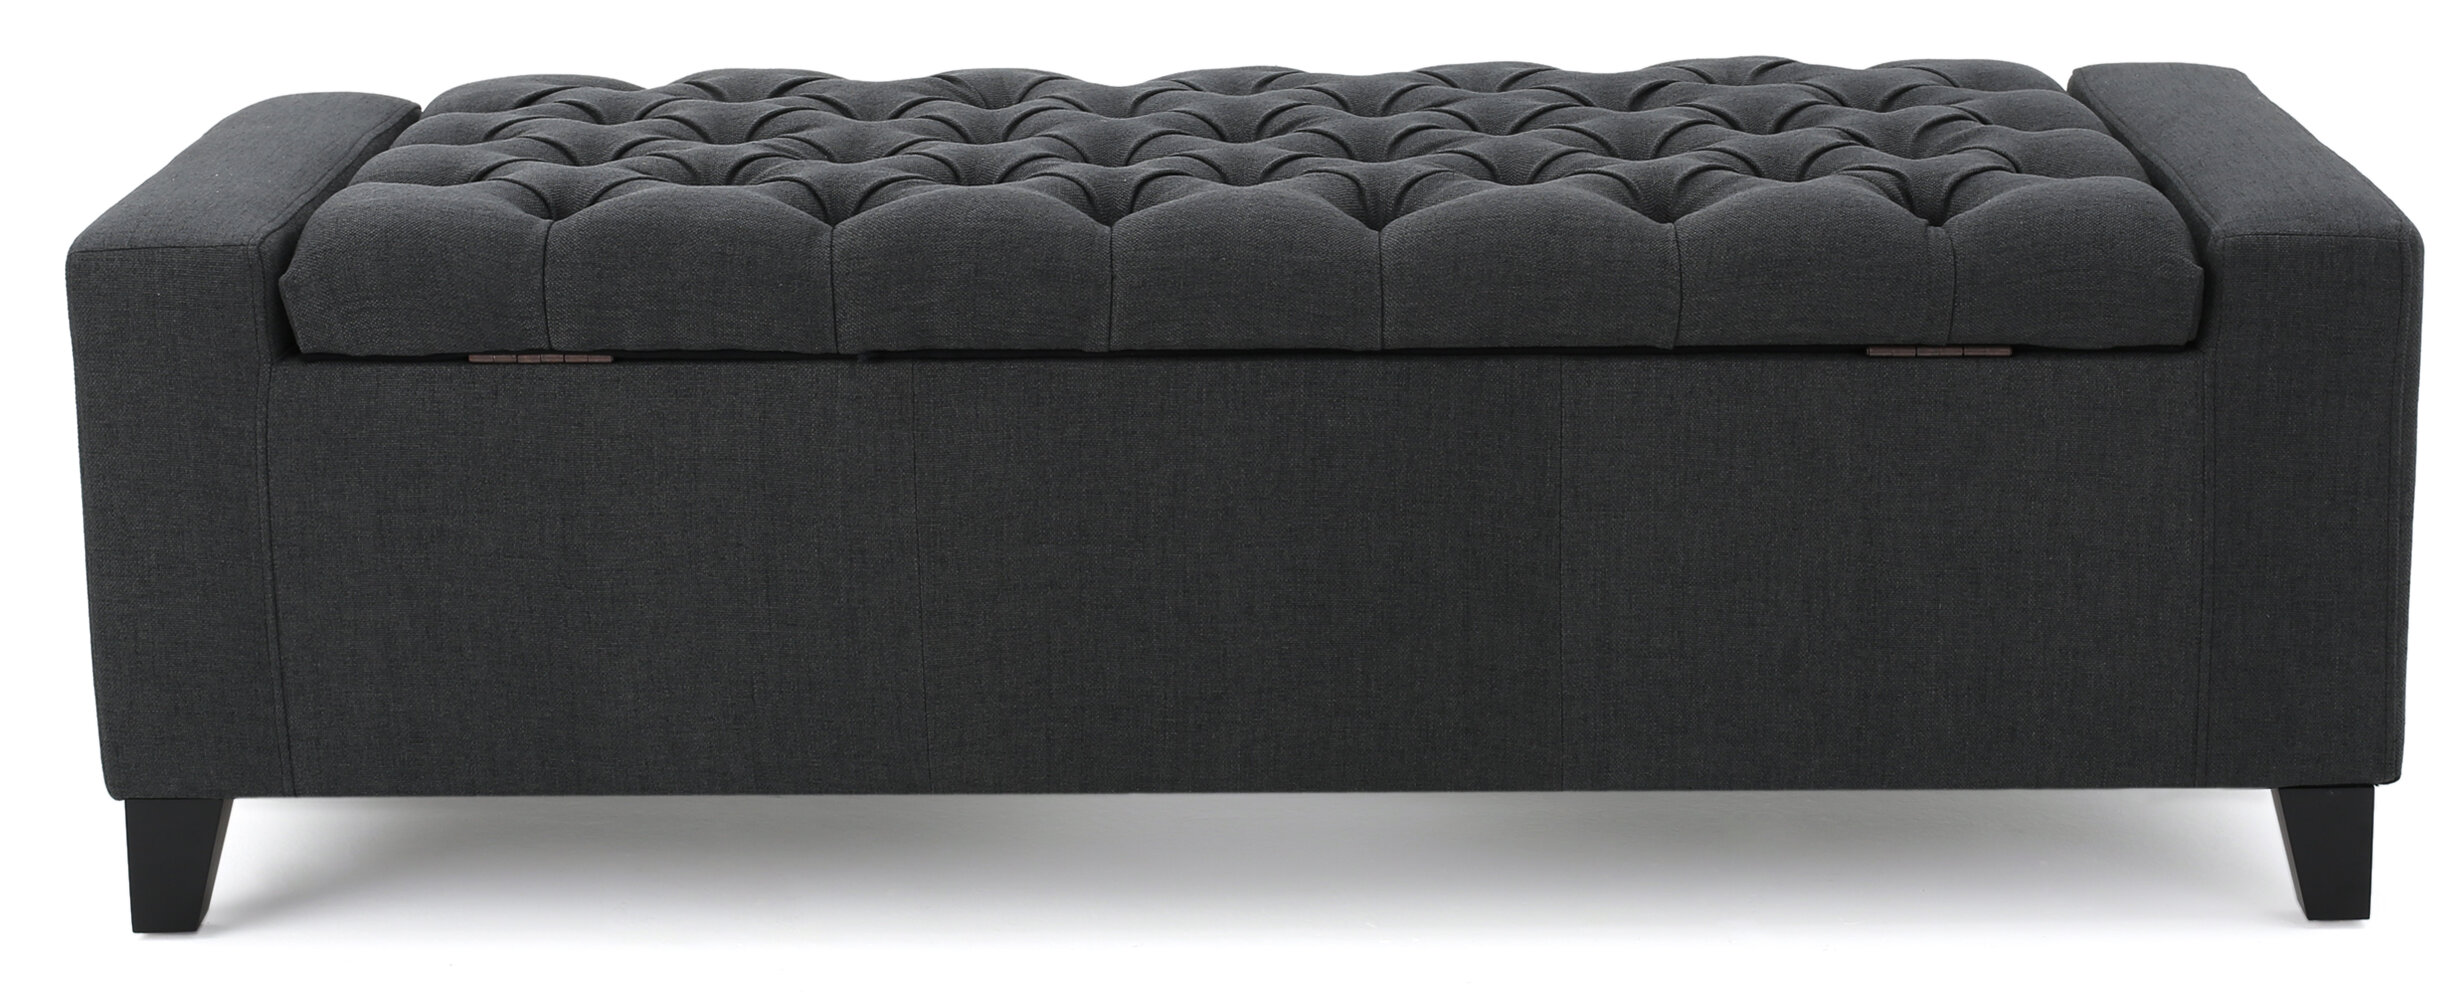 Luxury Shandra Charcoal Grey Tufted Top Storage Bench with Rich Wooden Legs